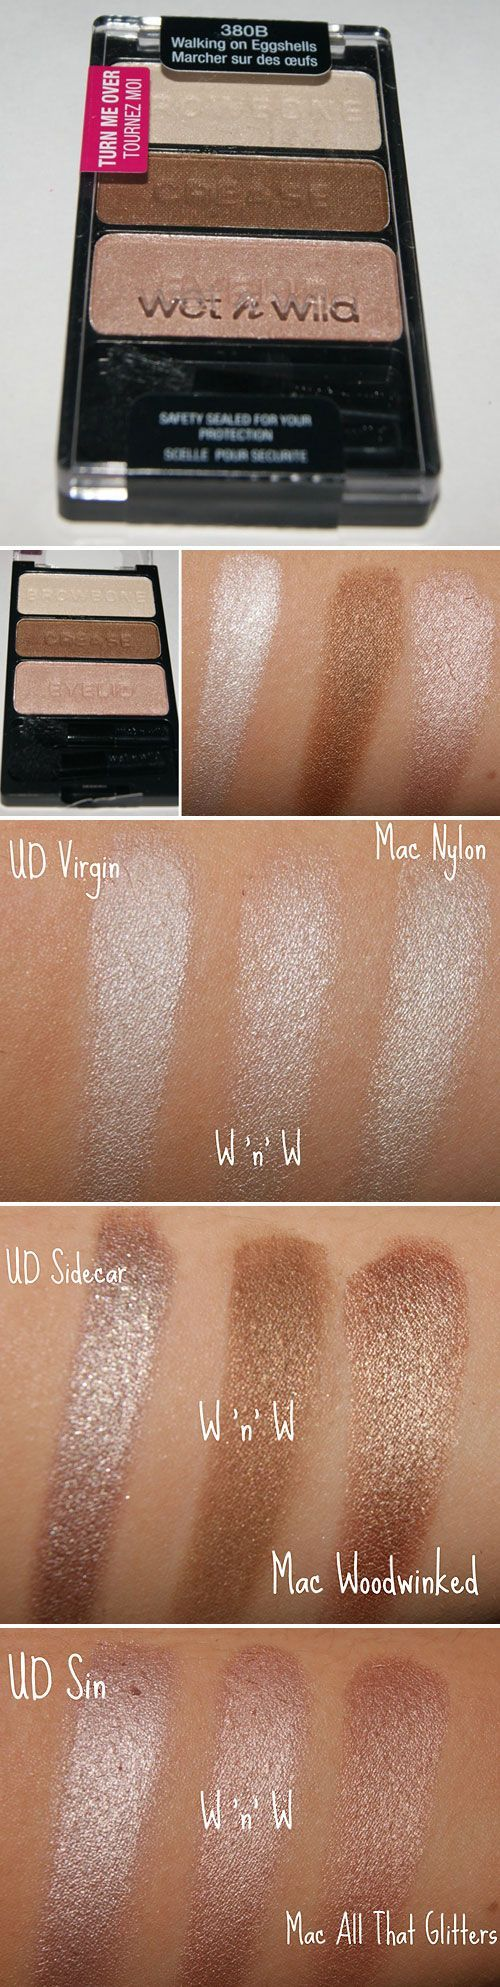 "Wet n' Wild Colorcon Eyeshadow Palette in ""Walking on Eggshells"" is a great dupe for both Mac (Nylon, Mulch, Naked Lunch) and Urban Decay (Virgin, Sidecar, Sin). Good to know...MAC-Nylon is the best browbone highlighter. I highlight my brow bones and inner corners of my eyes every time I put on makeup even if I'm going really light and not doing eyeshadow or anything. It's a totally effortless way to open up your eyes."